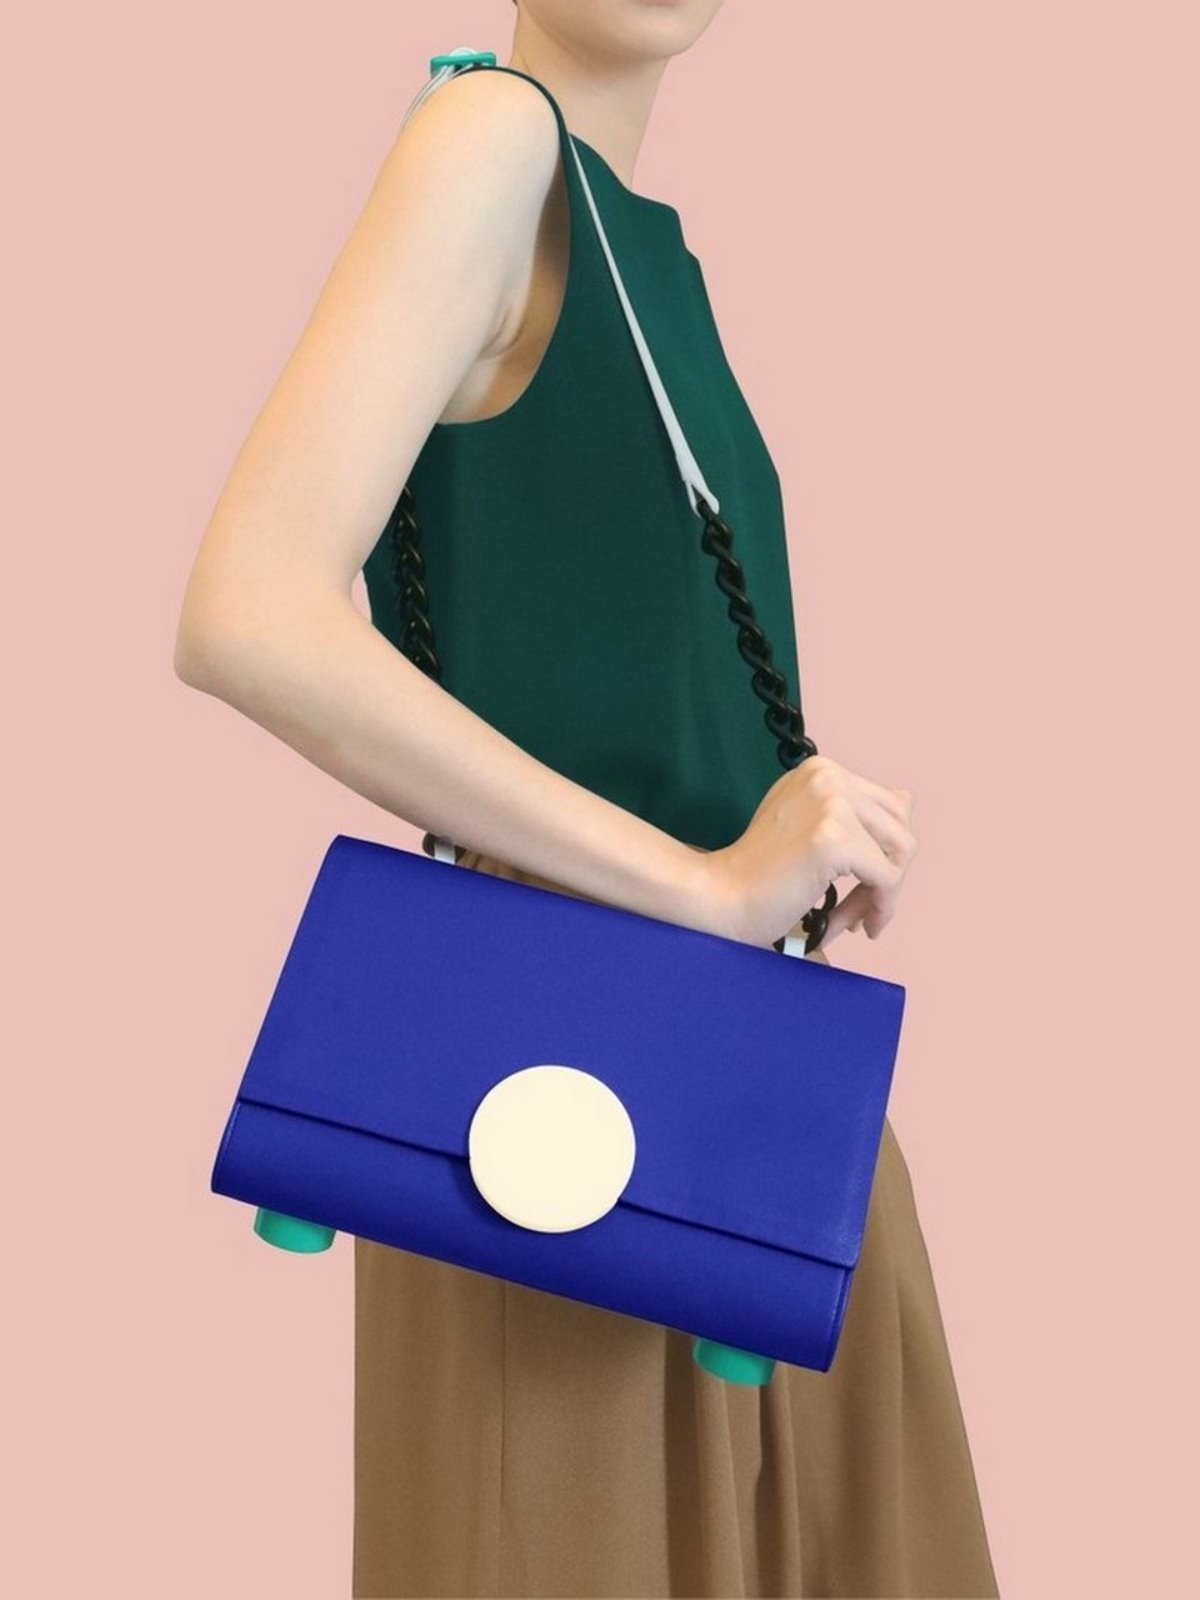 더조엘르 | MatterMatters - [MATTER MATTERS] 홍콩인기 숄더백  - Pythagoras Shoulder Bag Purple Blue